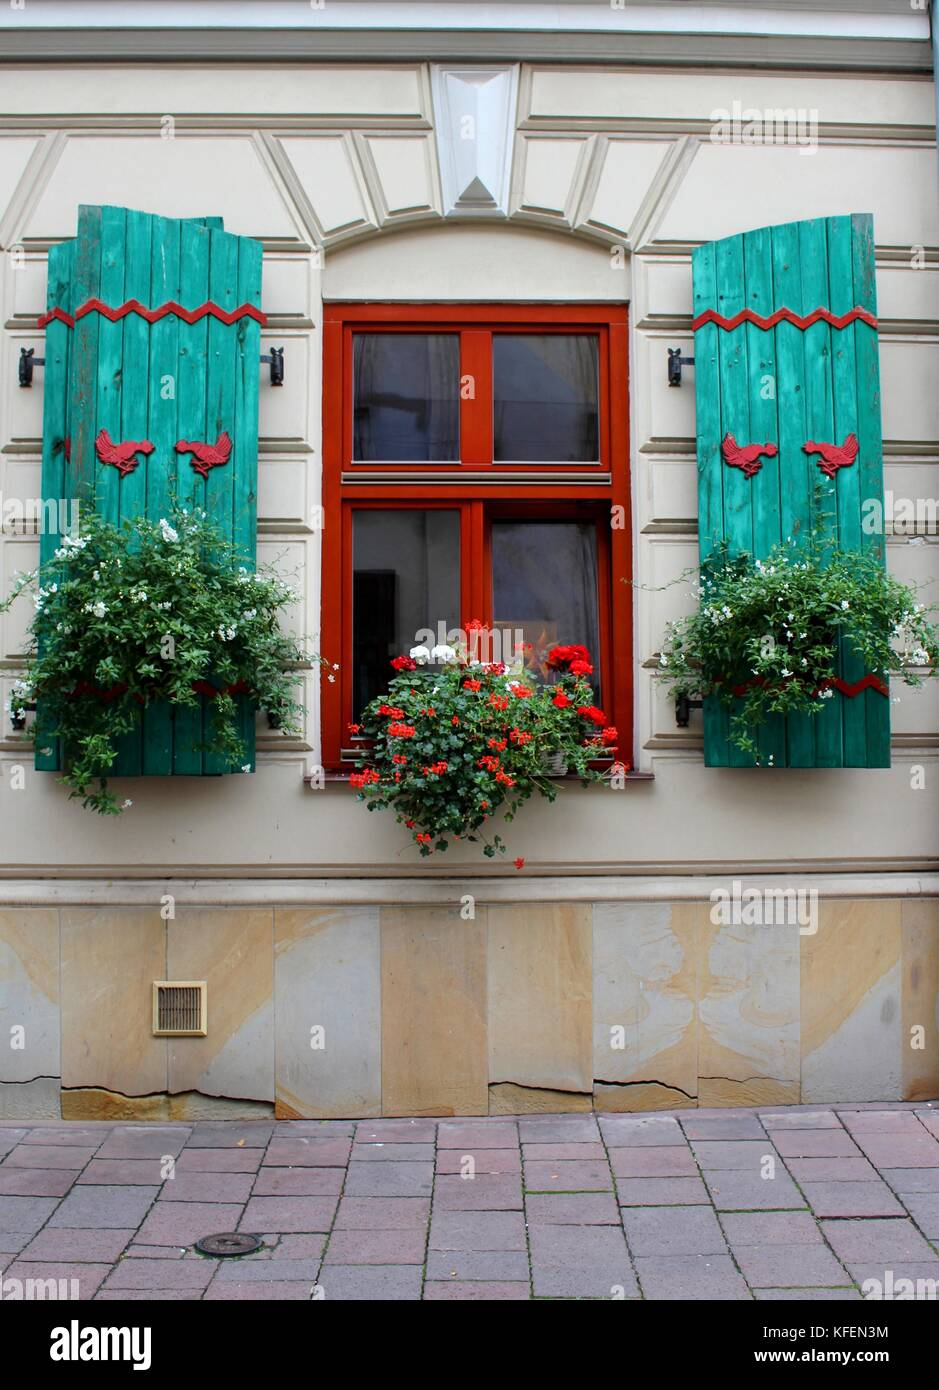 A decorative window in the Old Town Krakow. - Stock Image